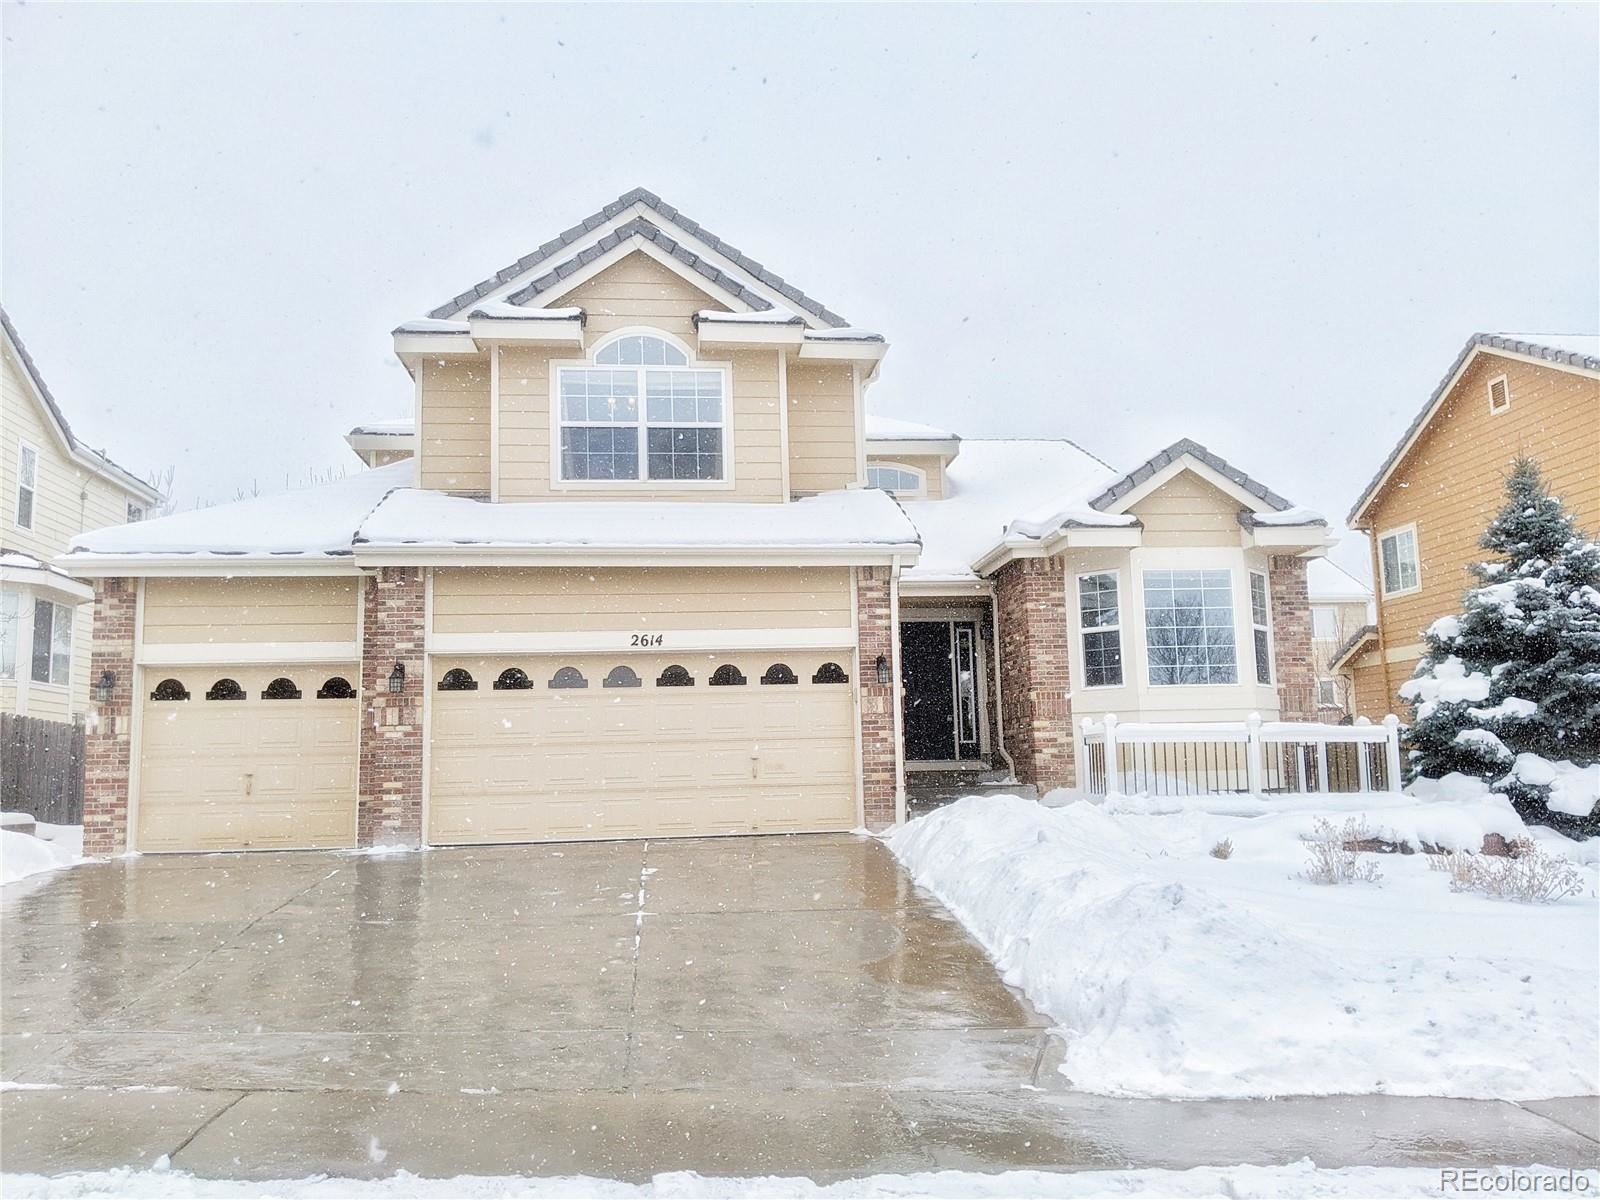 2614 E 137th Place, Thornton, CO 80602 - #: 7766887